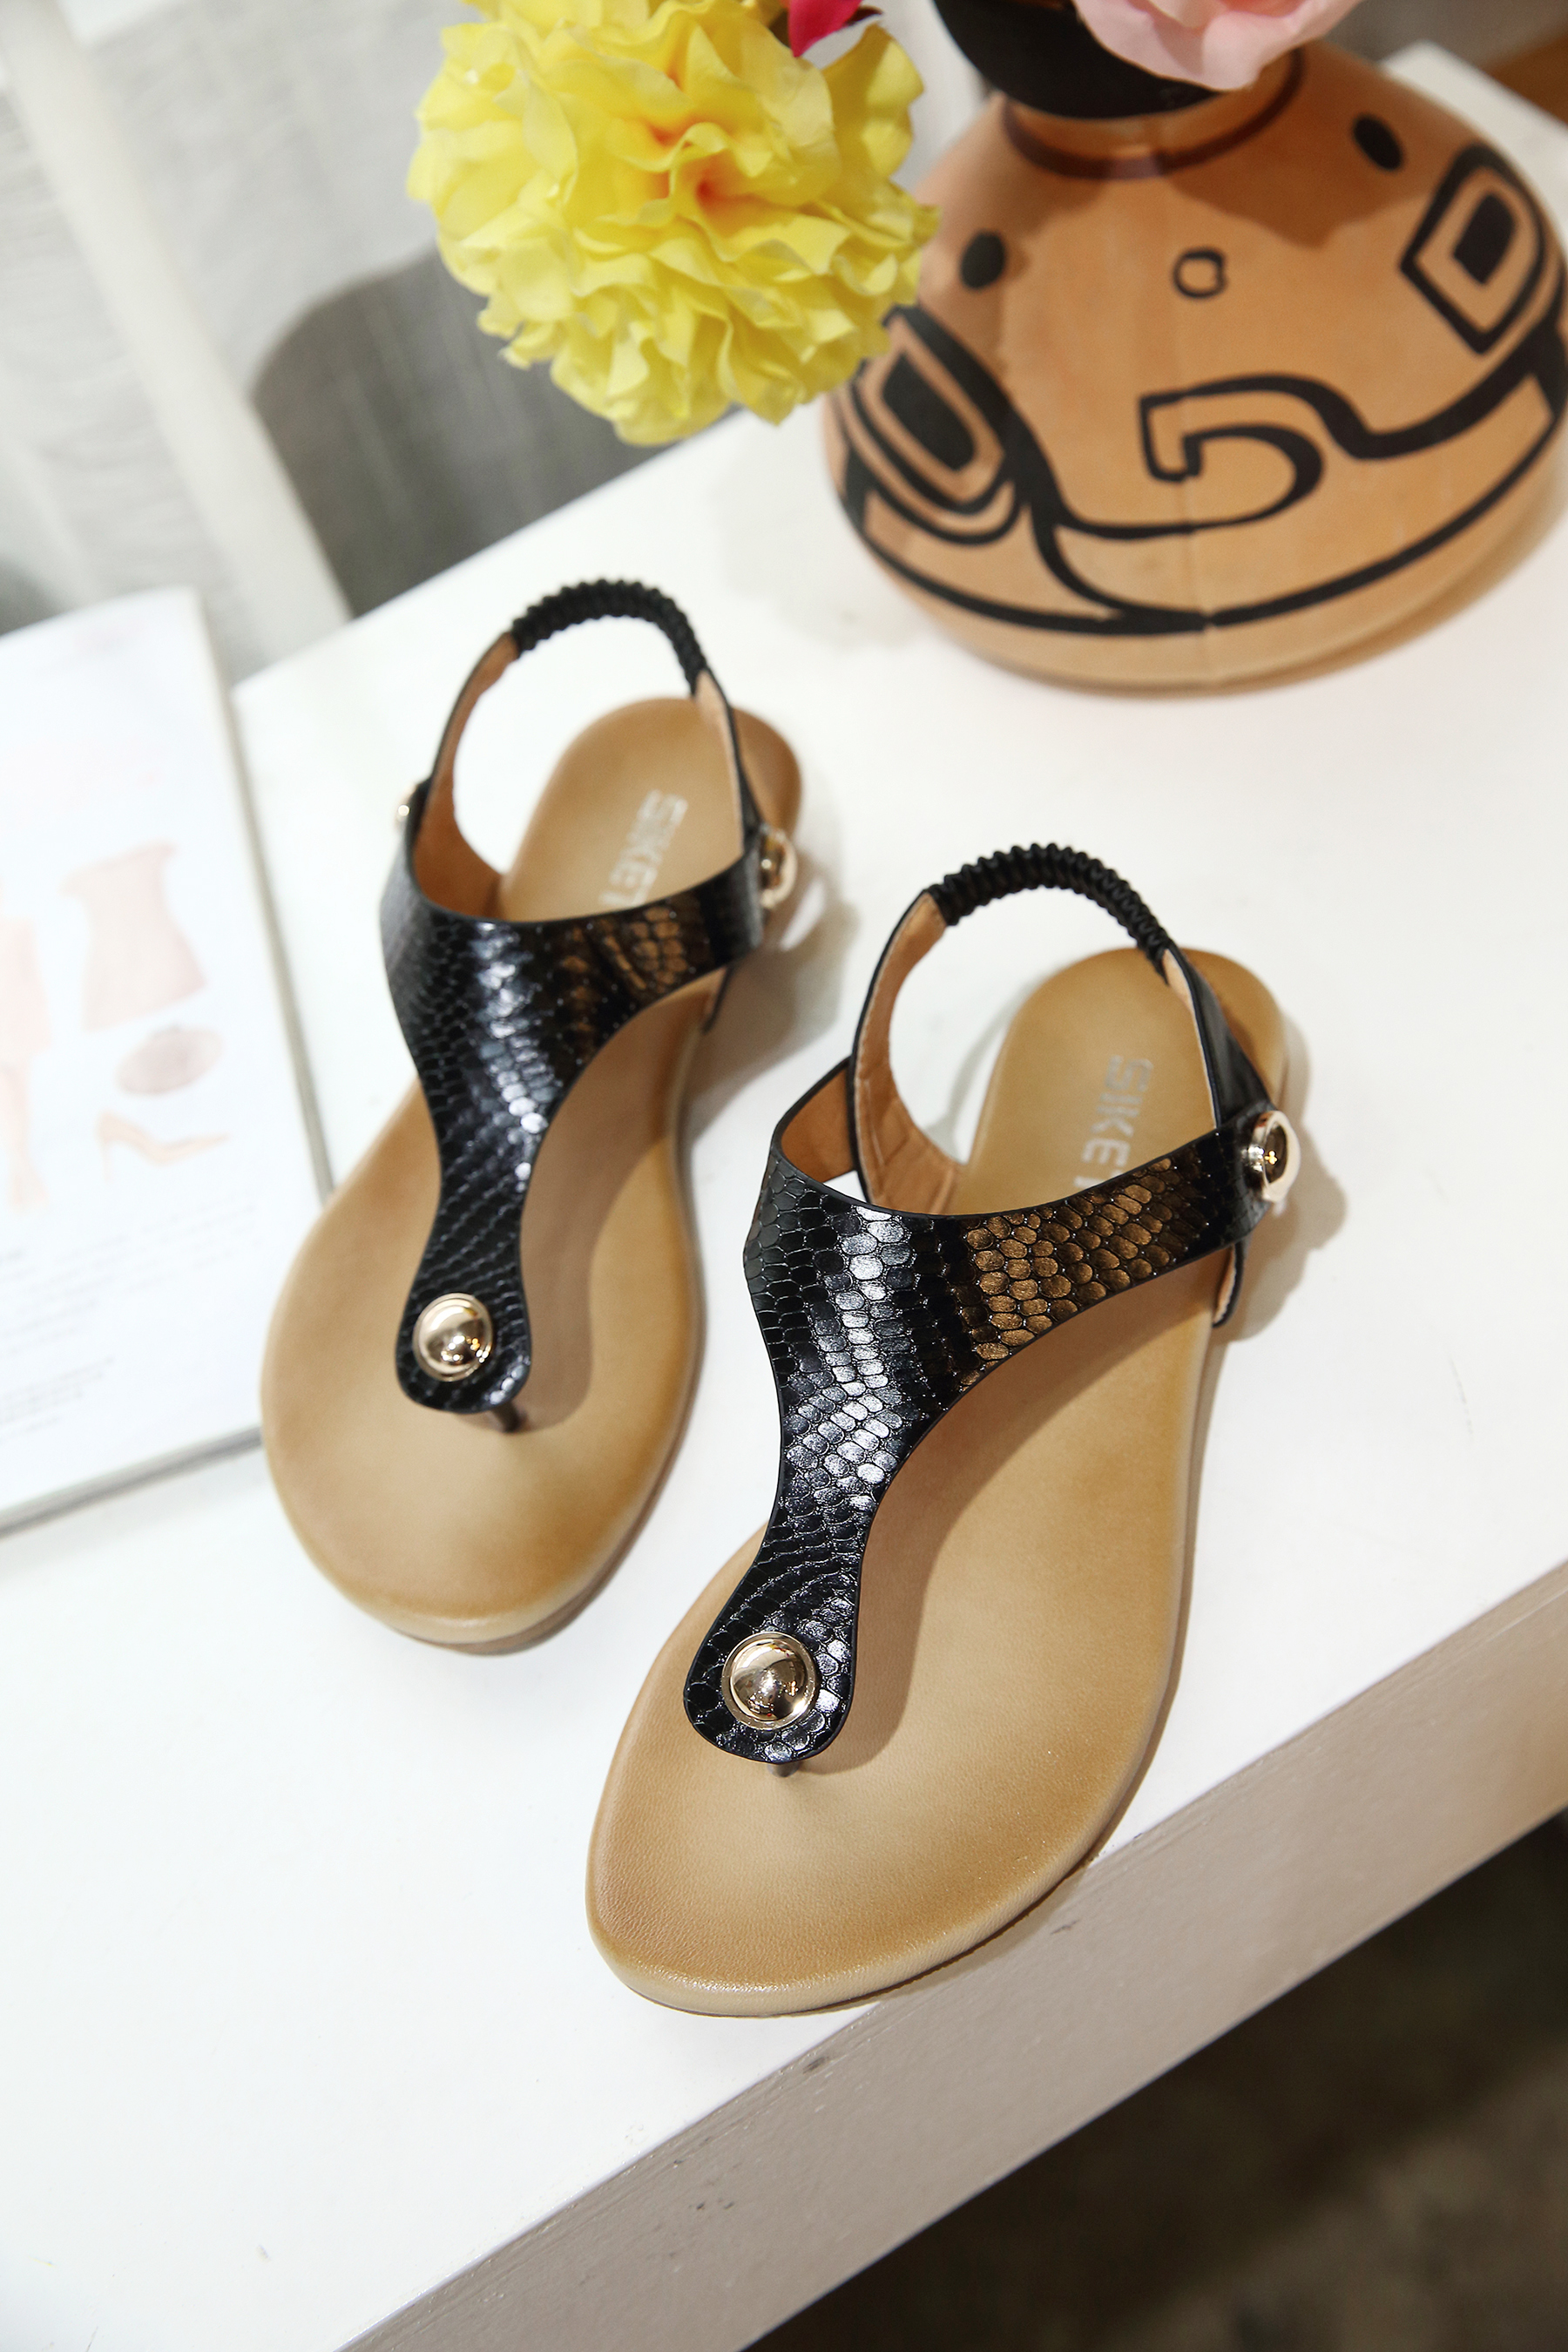 Chinese Low Cost ladies footwear with beautiful designs